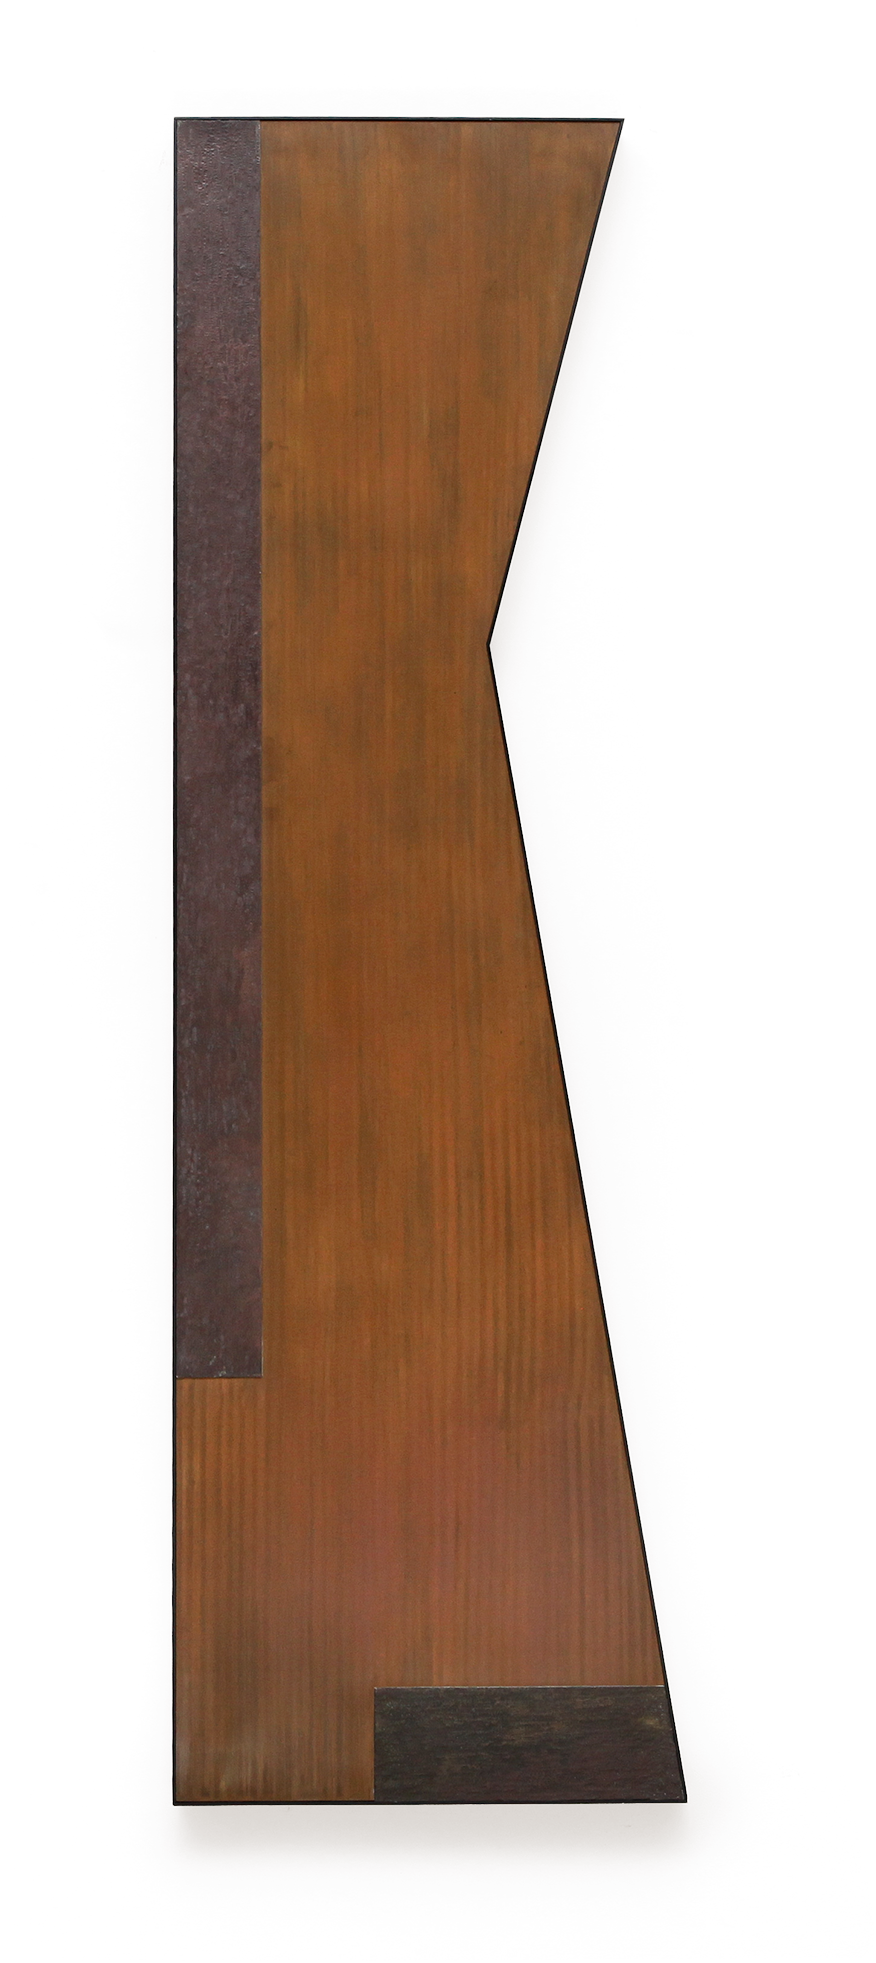 "Zig No. 4 , Dec. 2015, copper, tin, pine, plywood aluminum, 60 1/4""h x 18 1/4""w x 2""d"